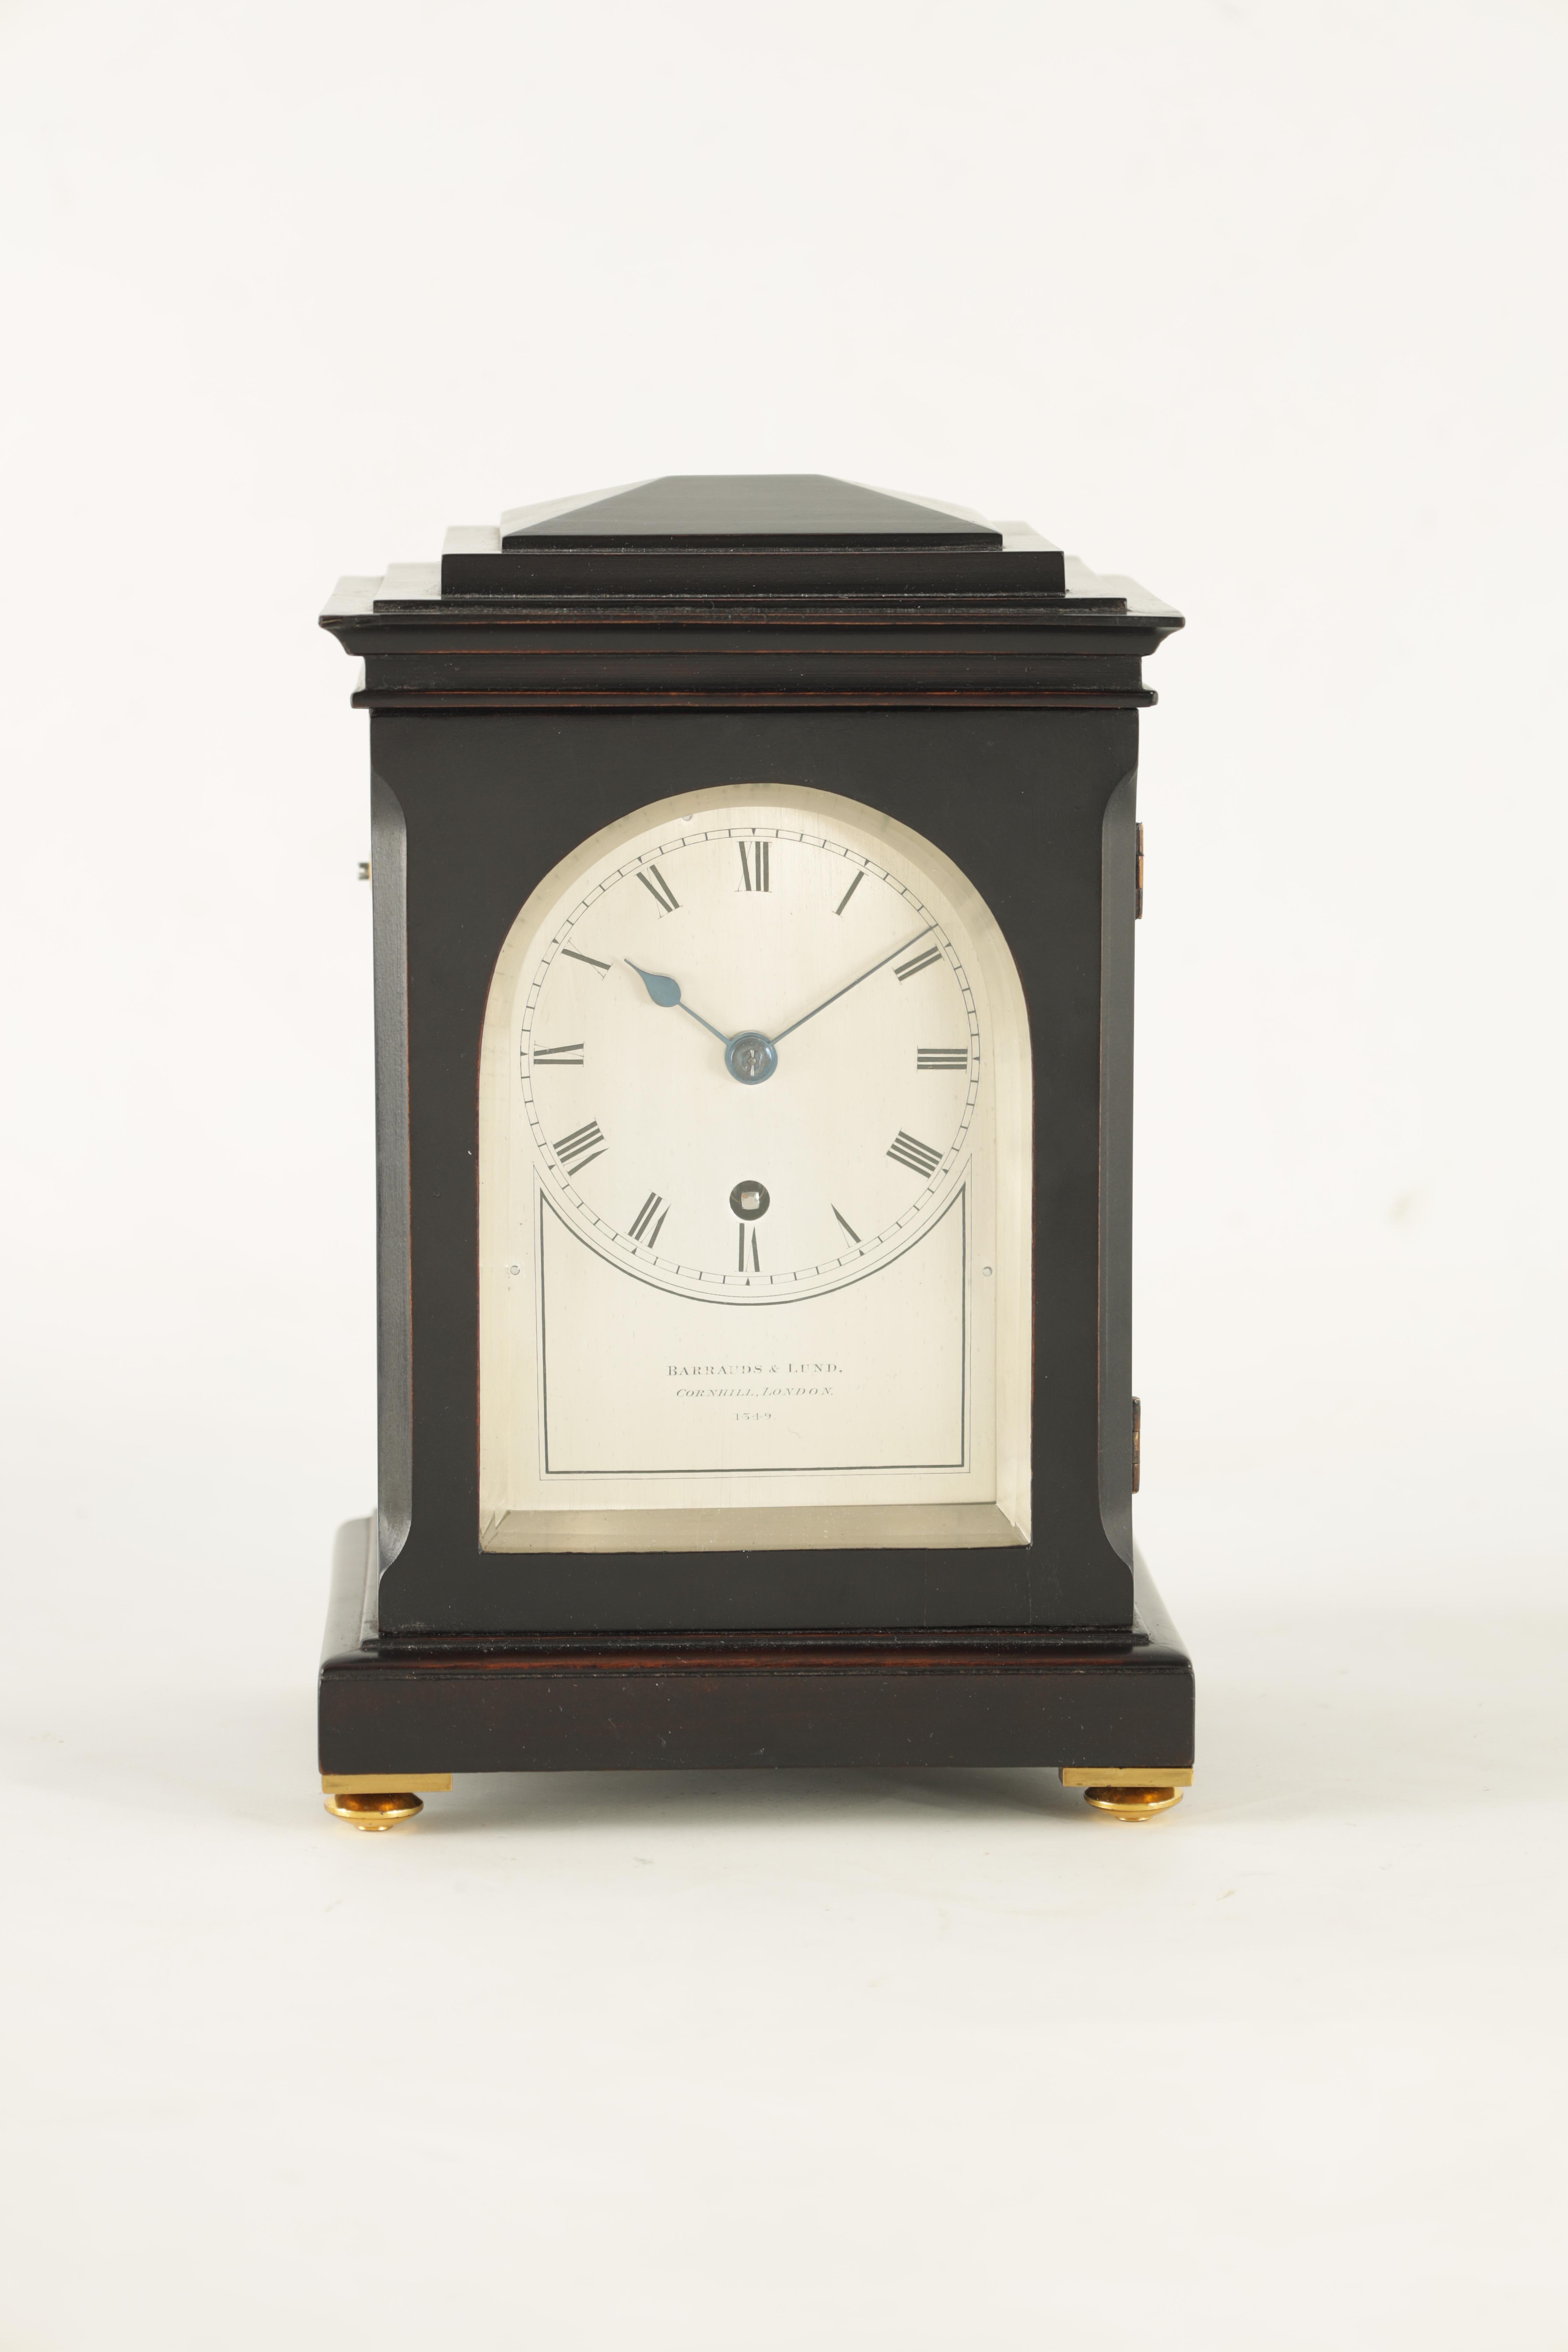 BARRAUDS & LUND, CORNHILL, LONDON. 1549 A FINE EARLY 19TH CENTURY REGENCY EBONISED ENGLISH FUSEE - Image 4 of 8